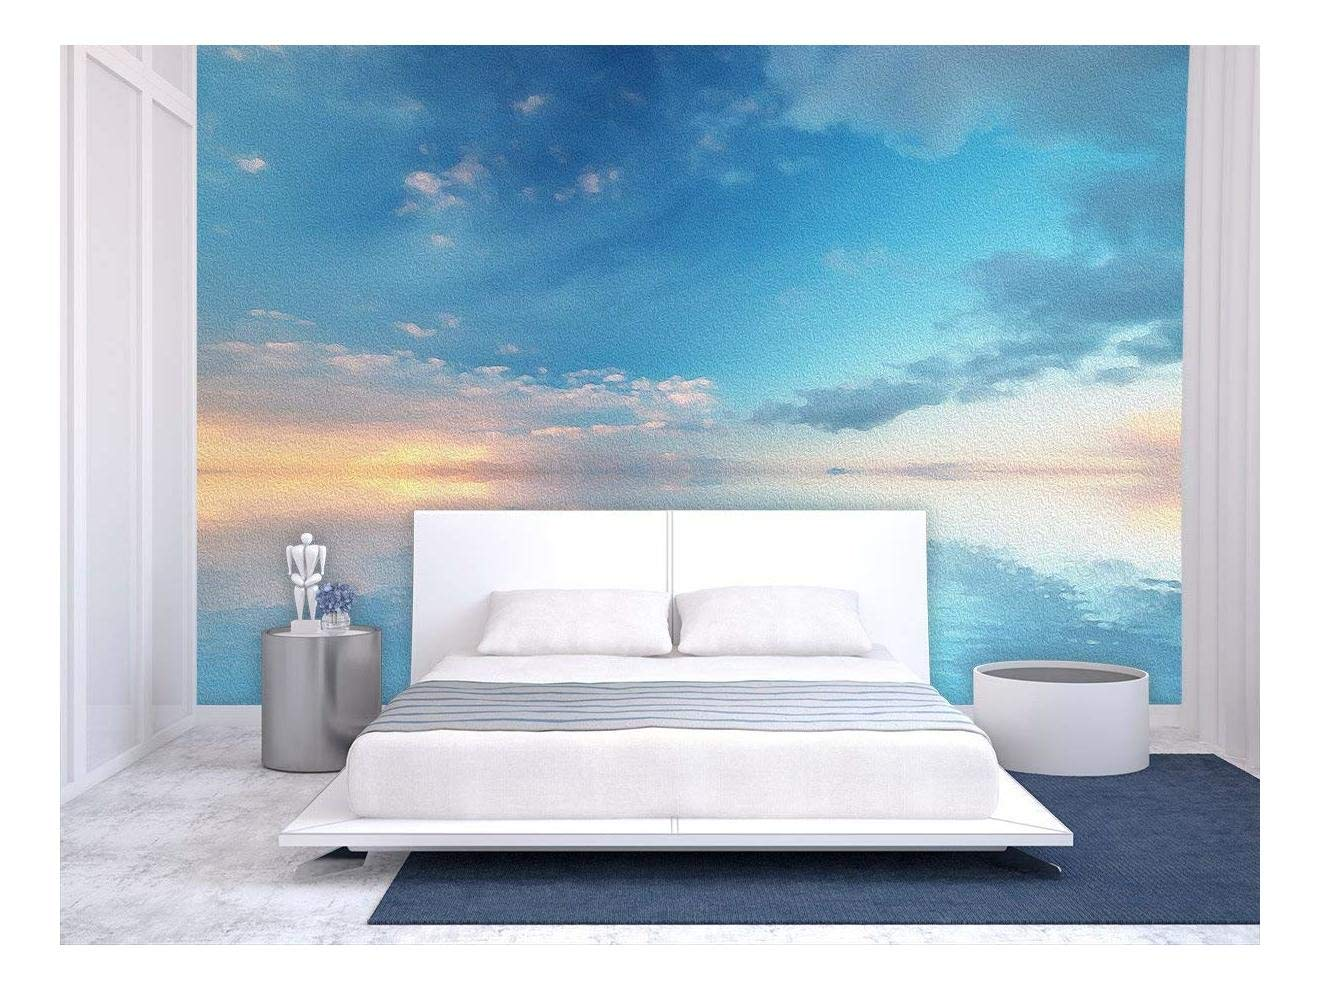 wall26 - Large Wall Mural - Oil Painting Style Landscape with Blue Sky Reflected on Calm Ocean at The Sunset | Self-Adhesive Vinyl Wallpaper/Removable Modern Wall Decor - 100x144 inches